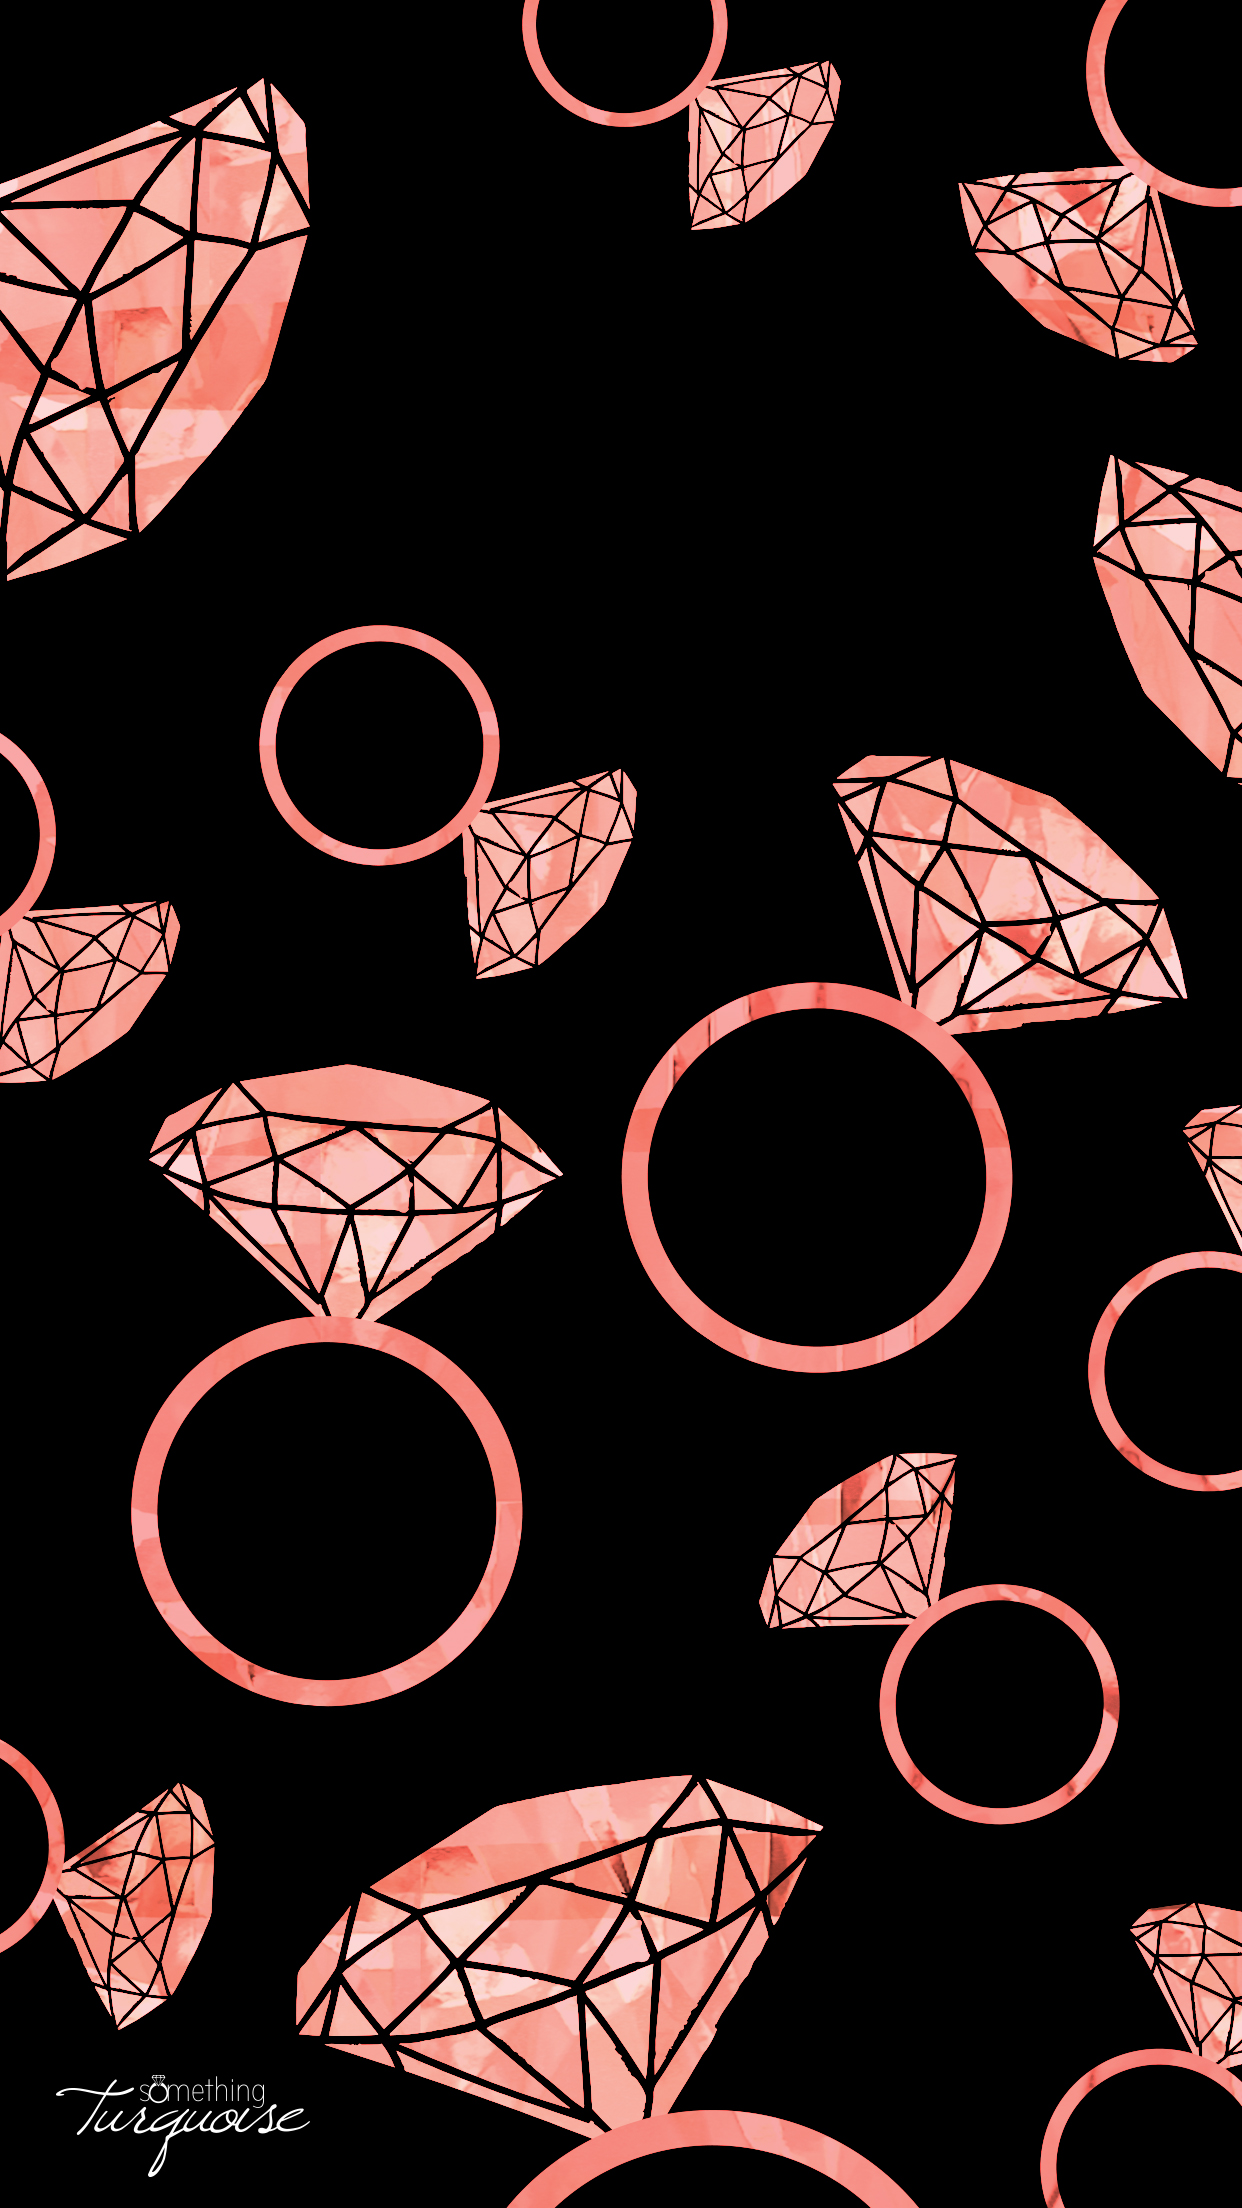 FREE pink diamond ring iPhone wallpaper!